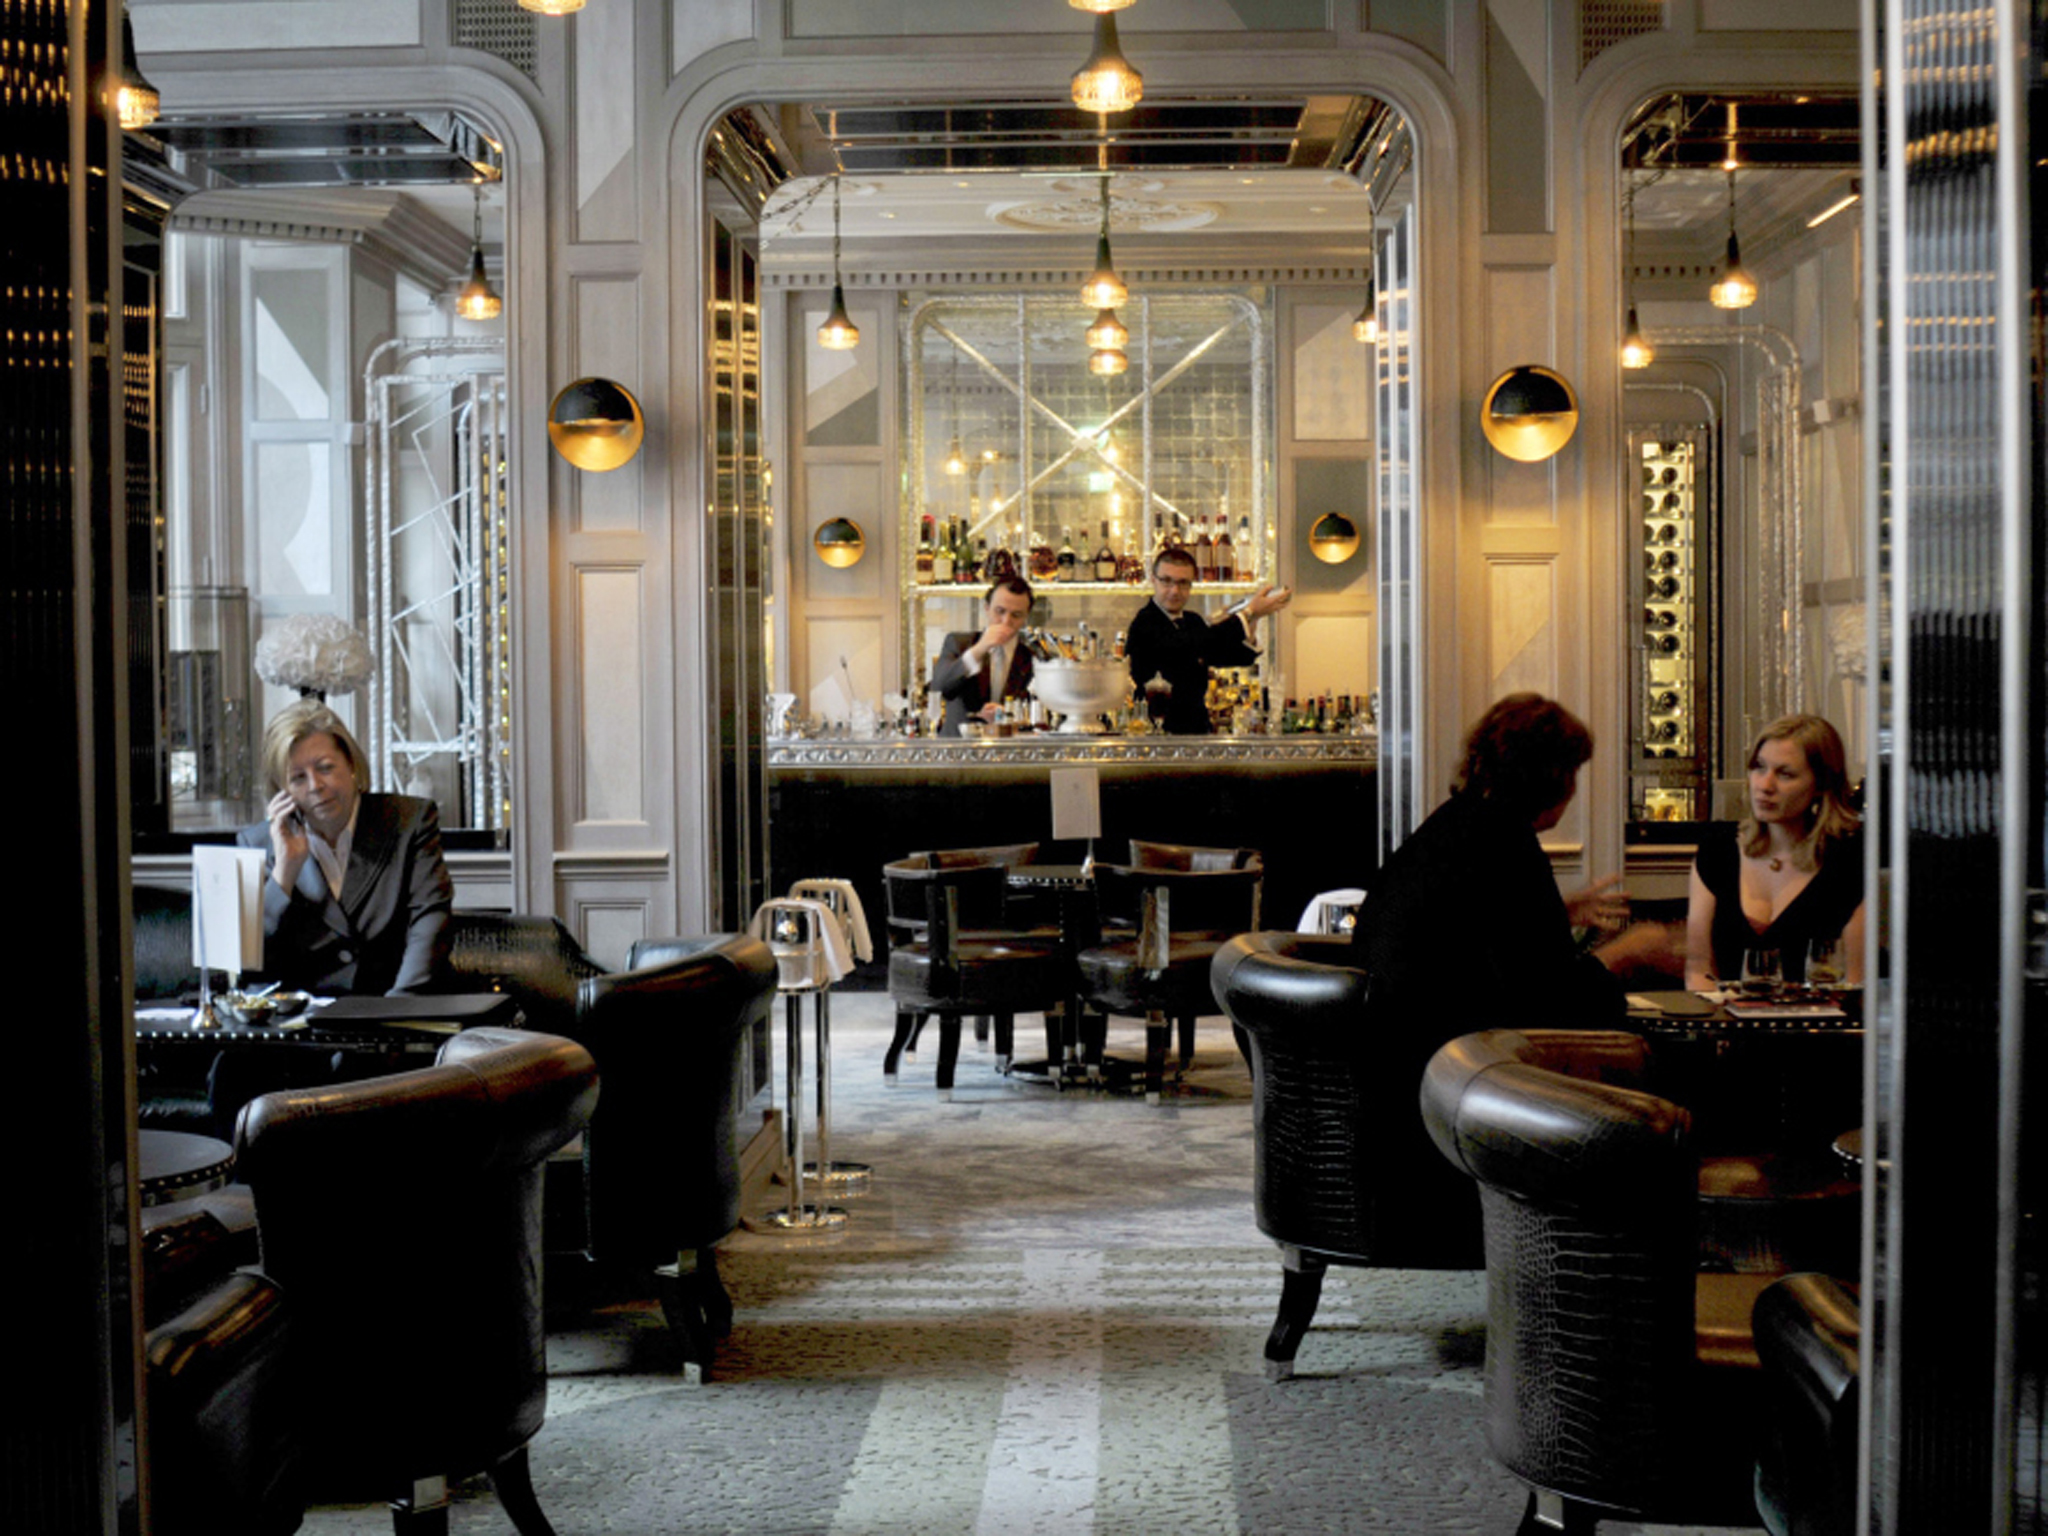 The 100 best bars and pubs in London - The Connaught Bar, Mayfair